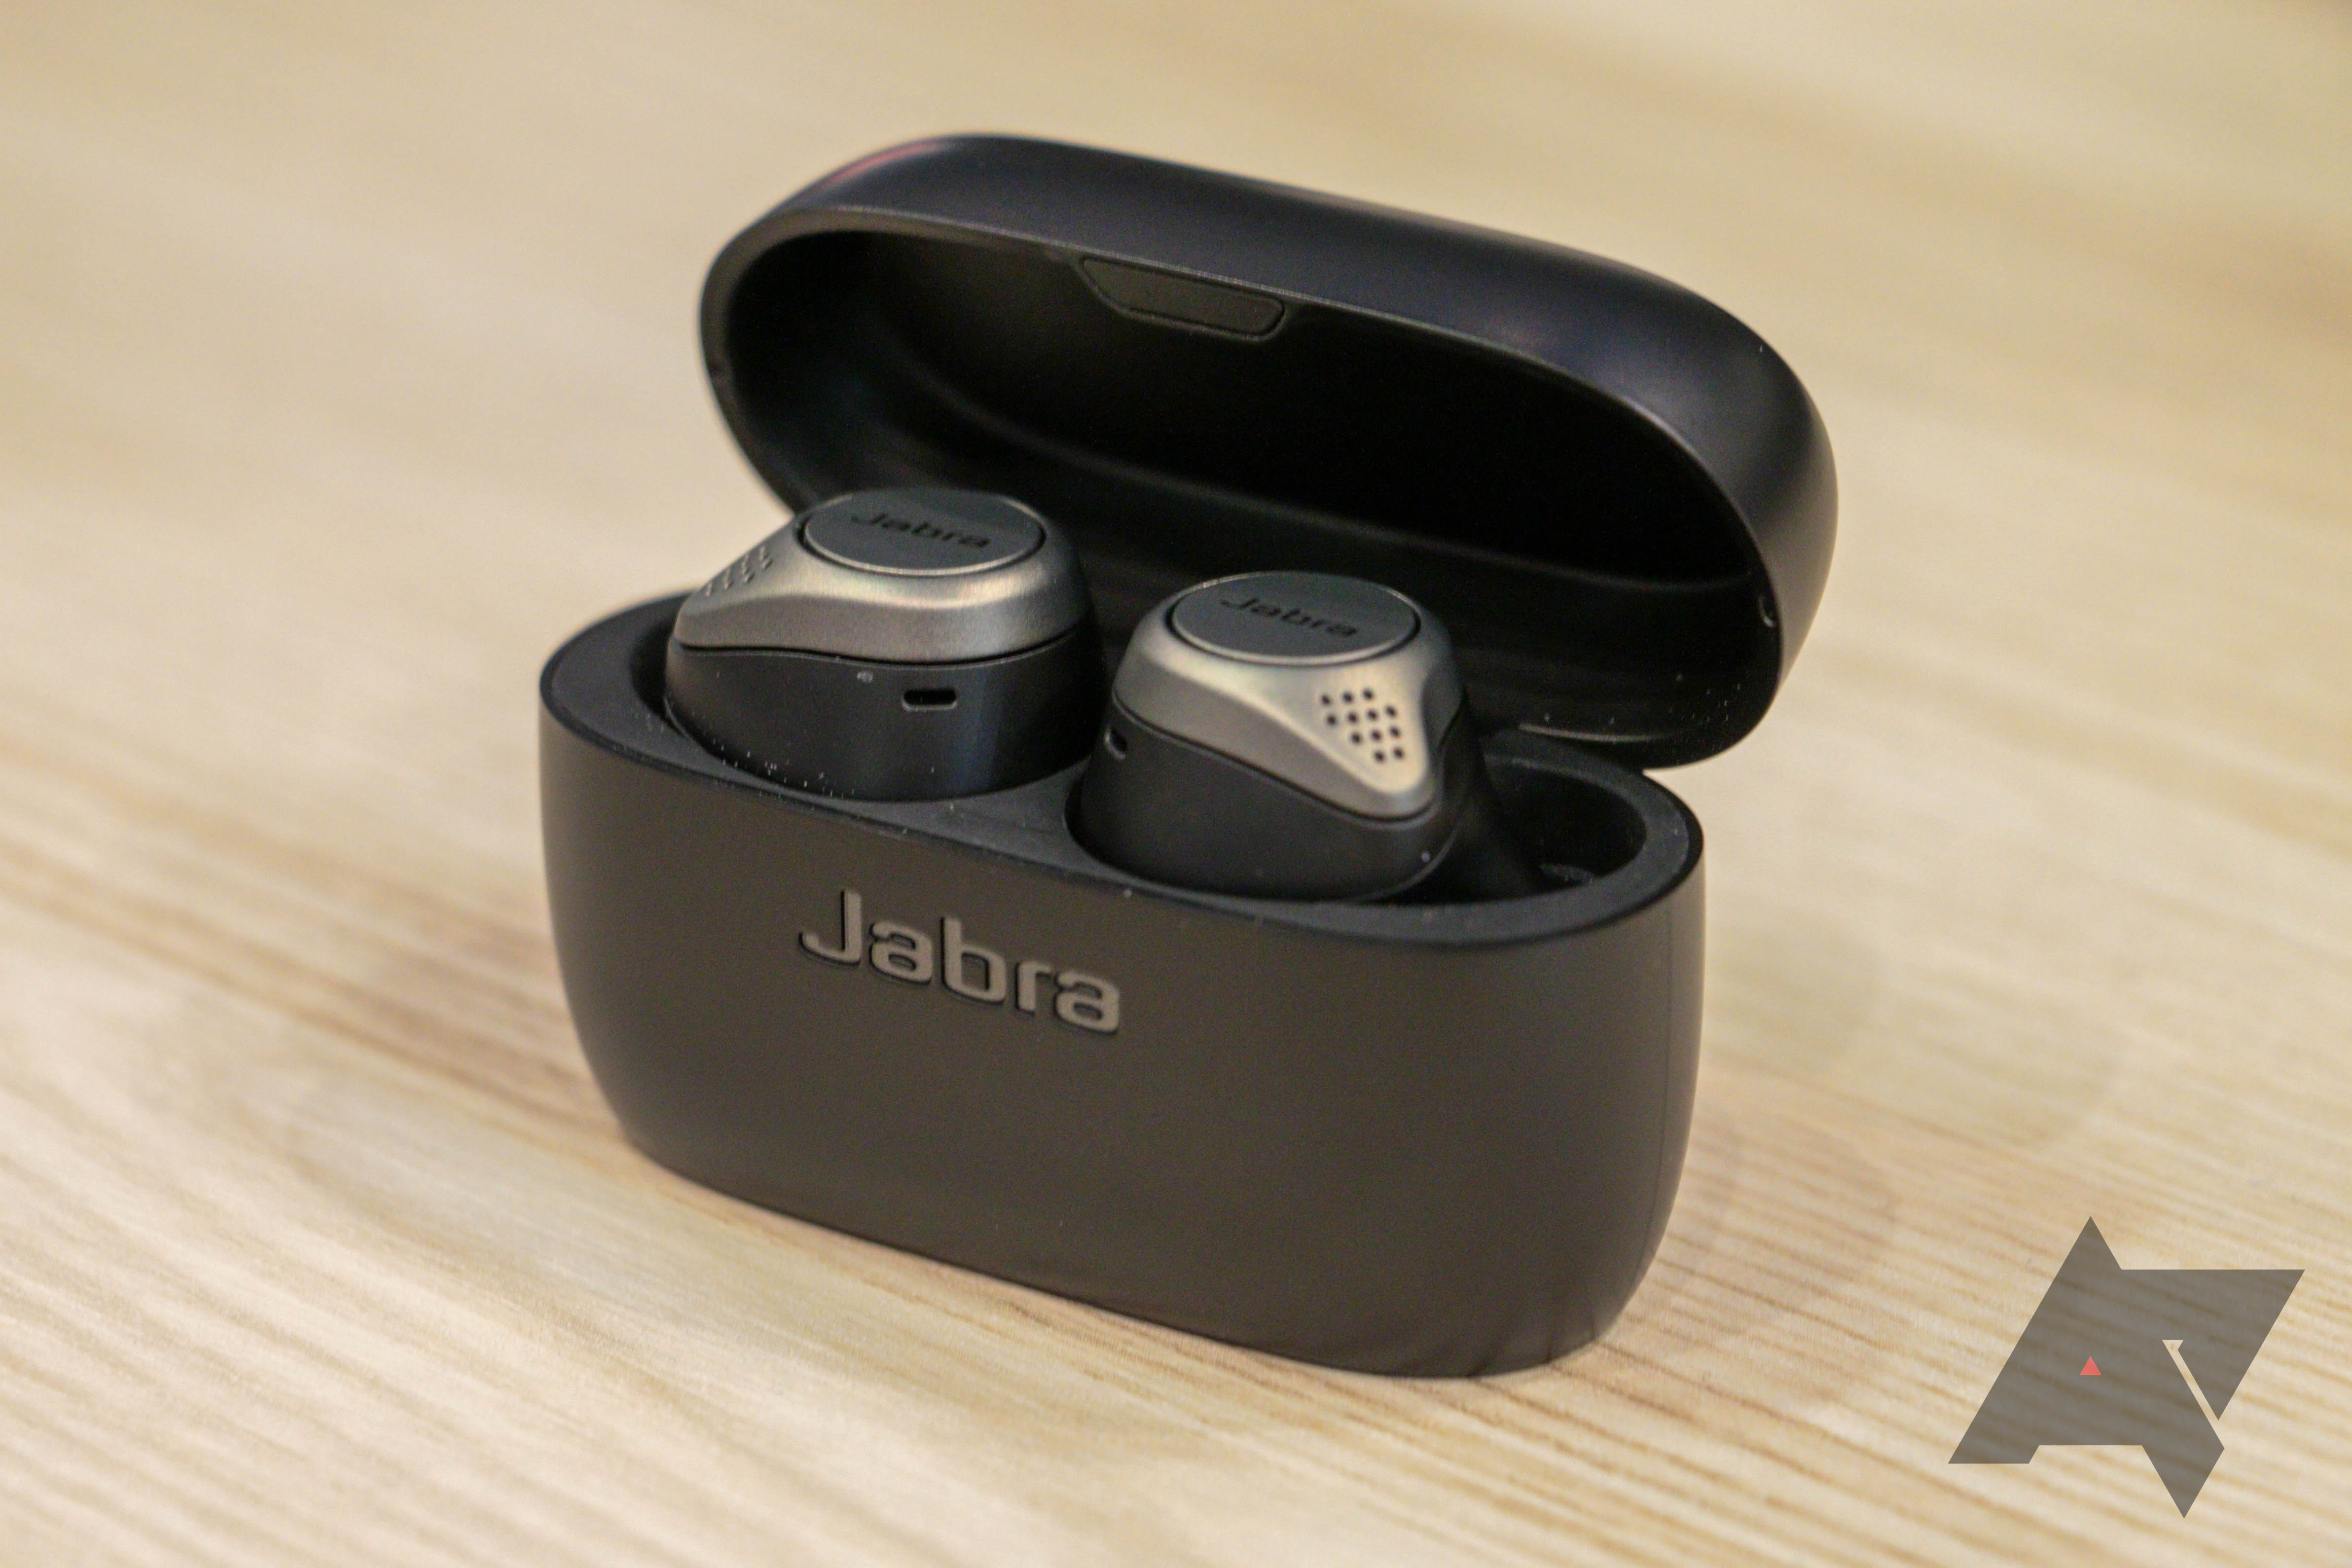 Jabra S New Elite 75t Earbuds Come With Usb C And Last 7 5 Hours On A Single Charge